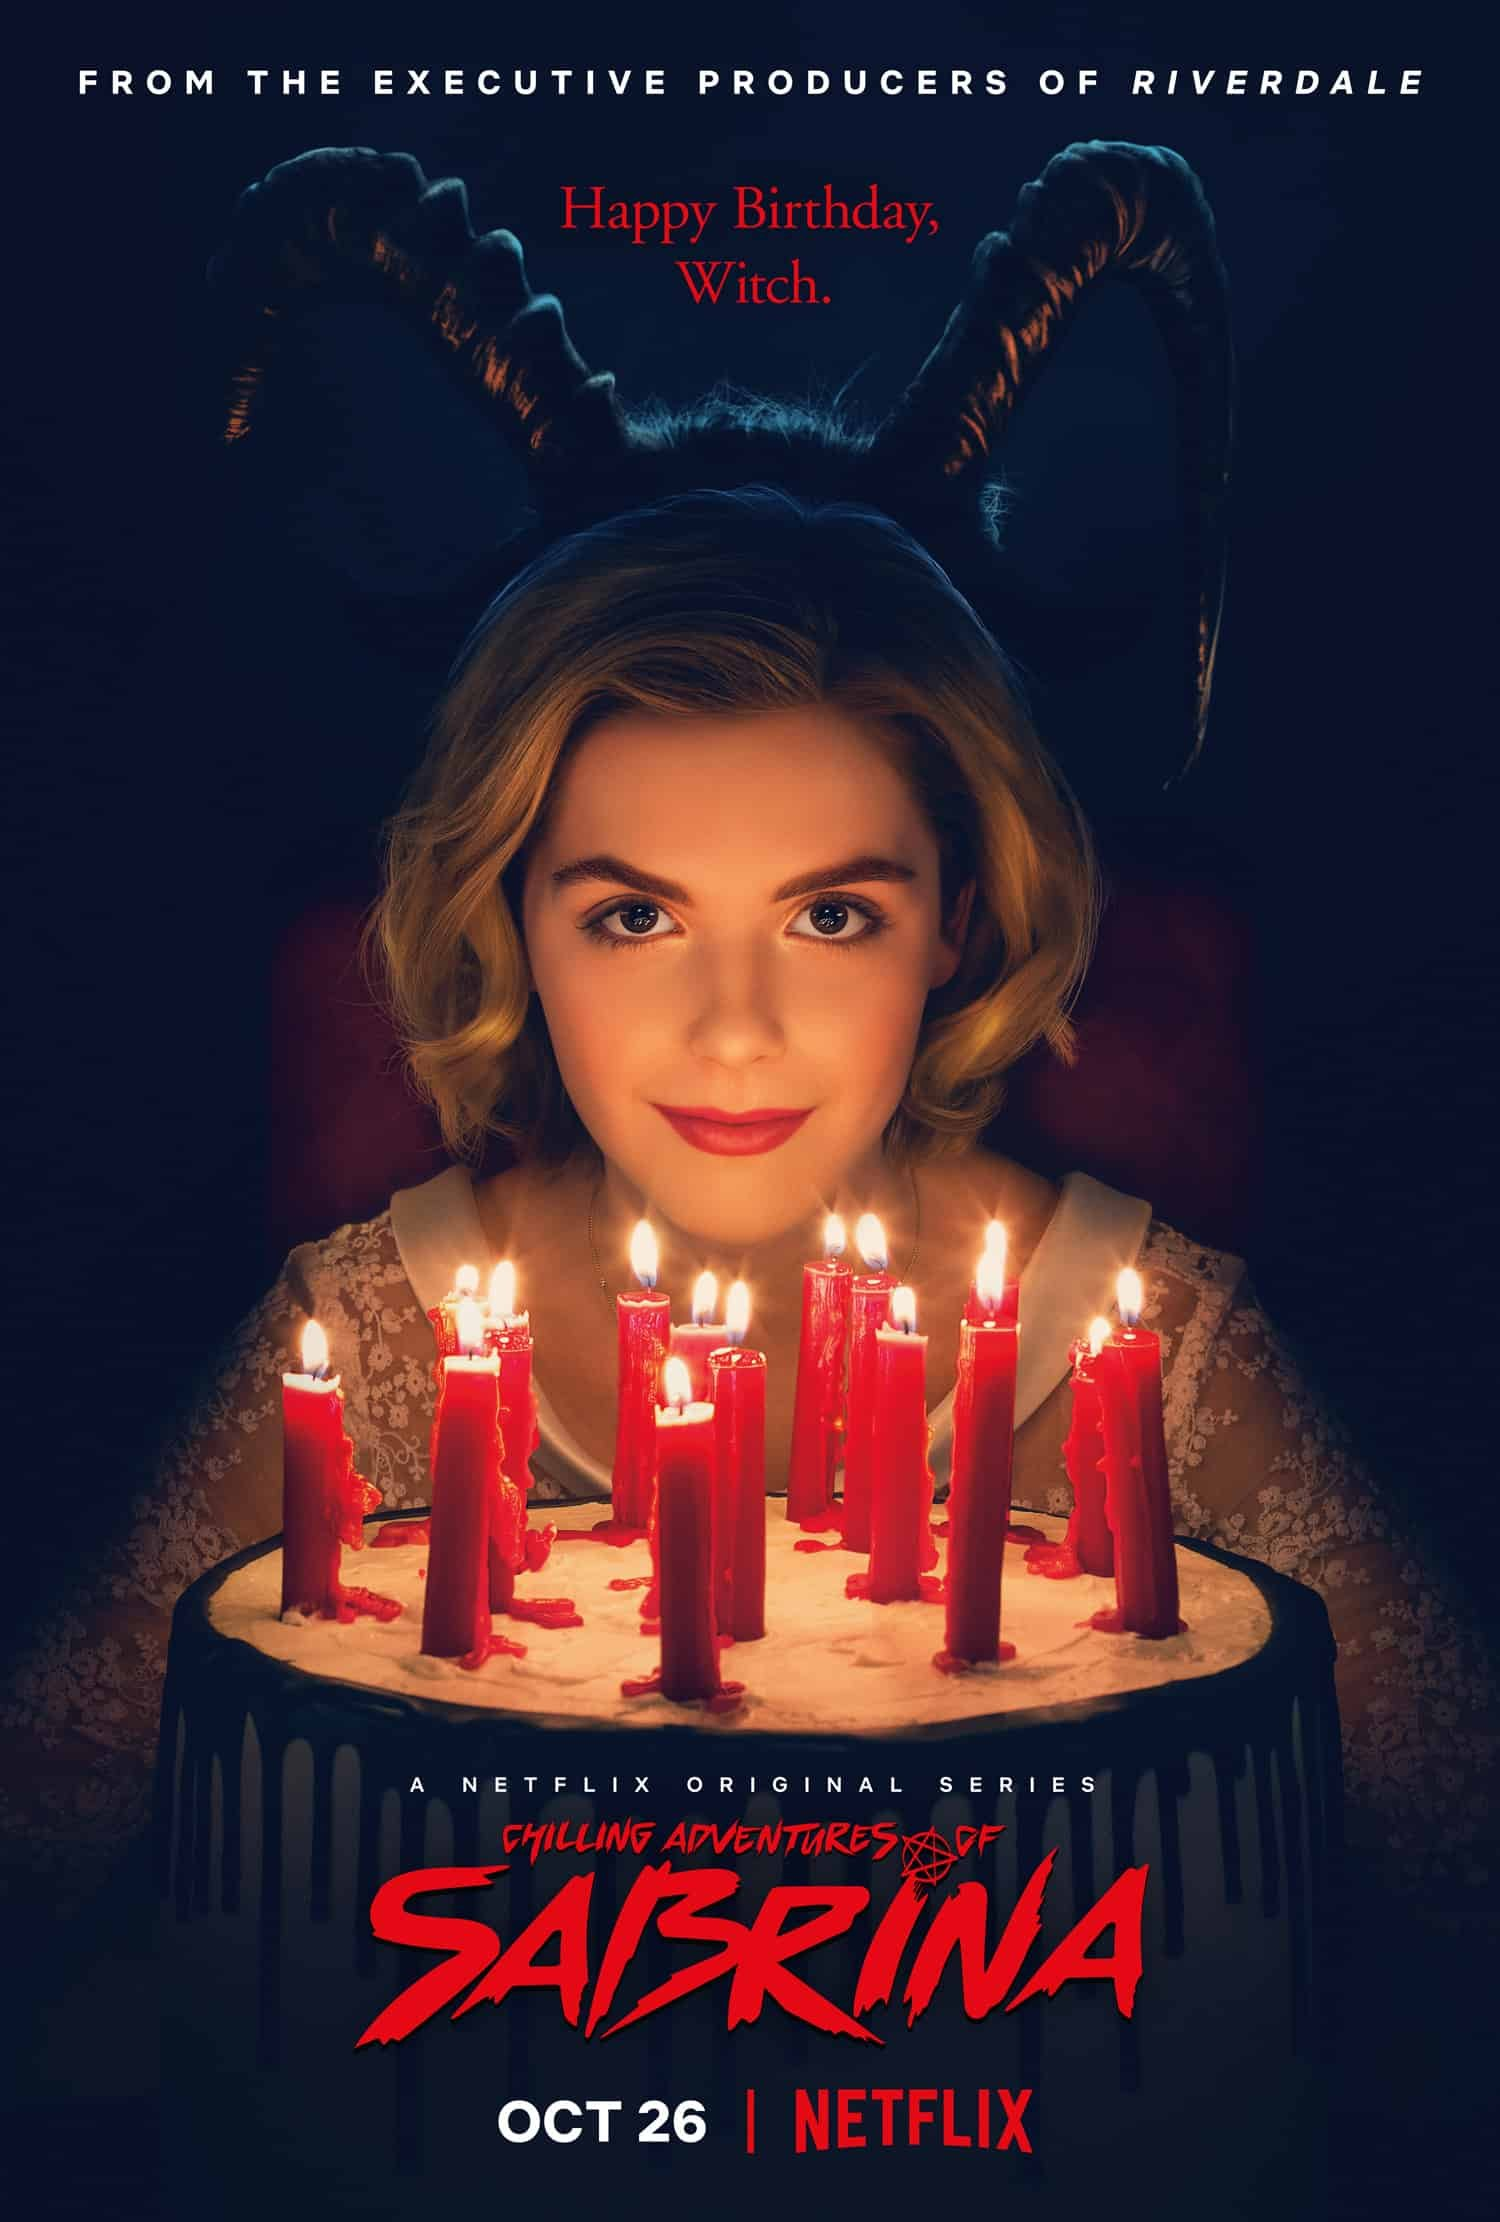 Chilling Adventures of Sabrina (TV Show) Review